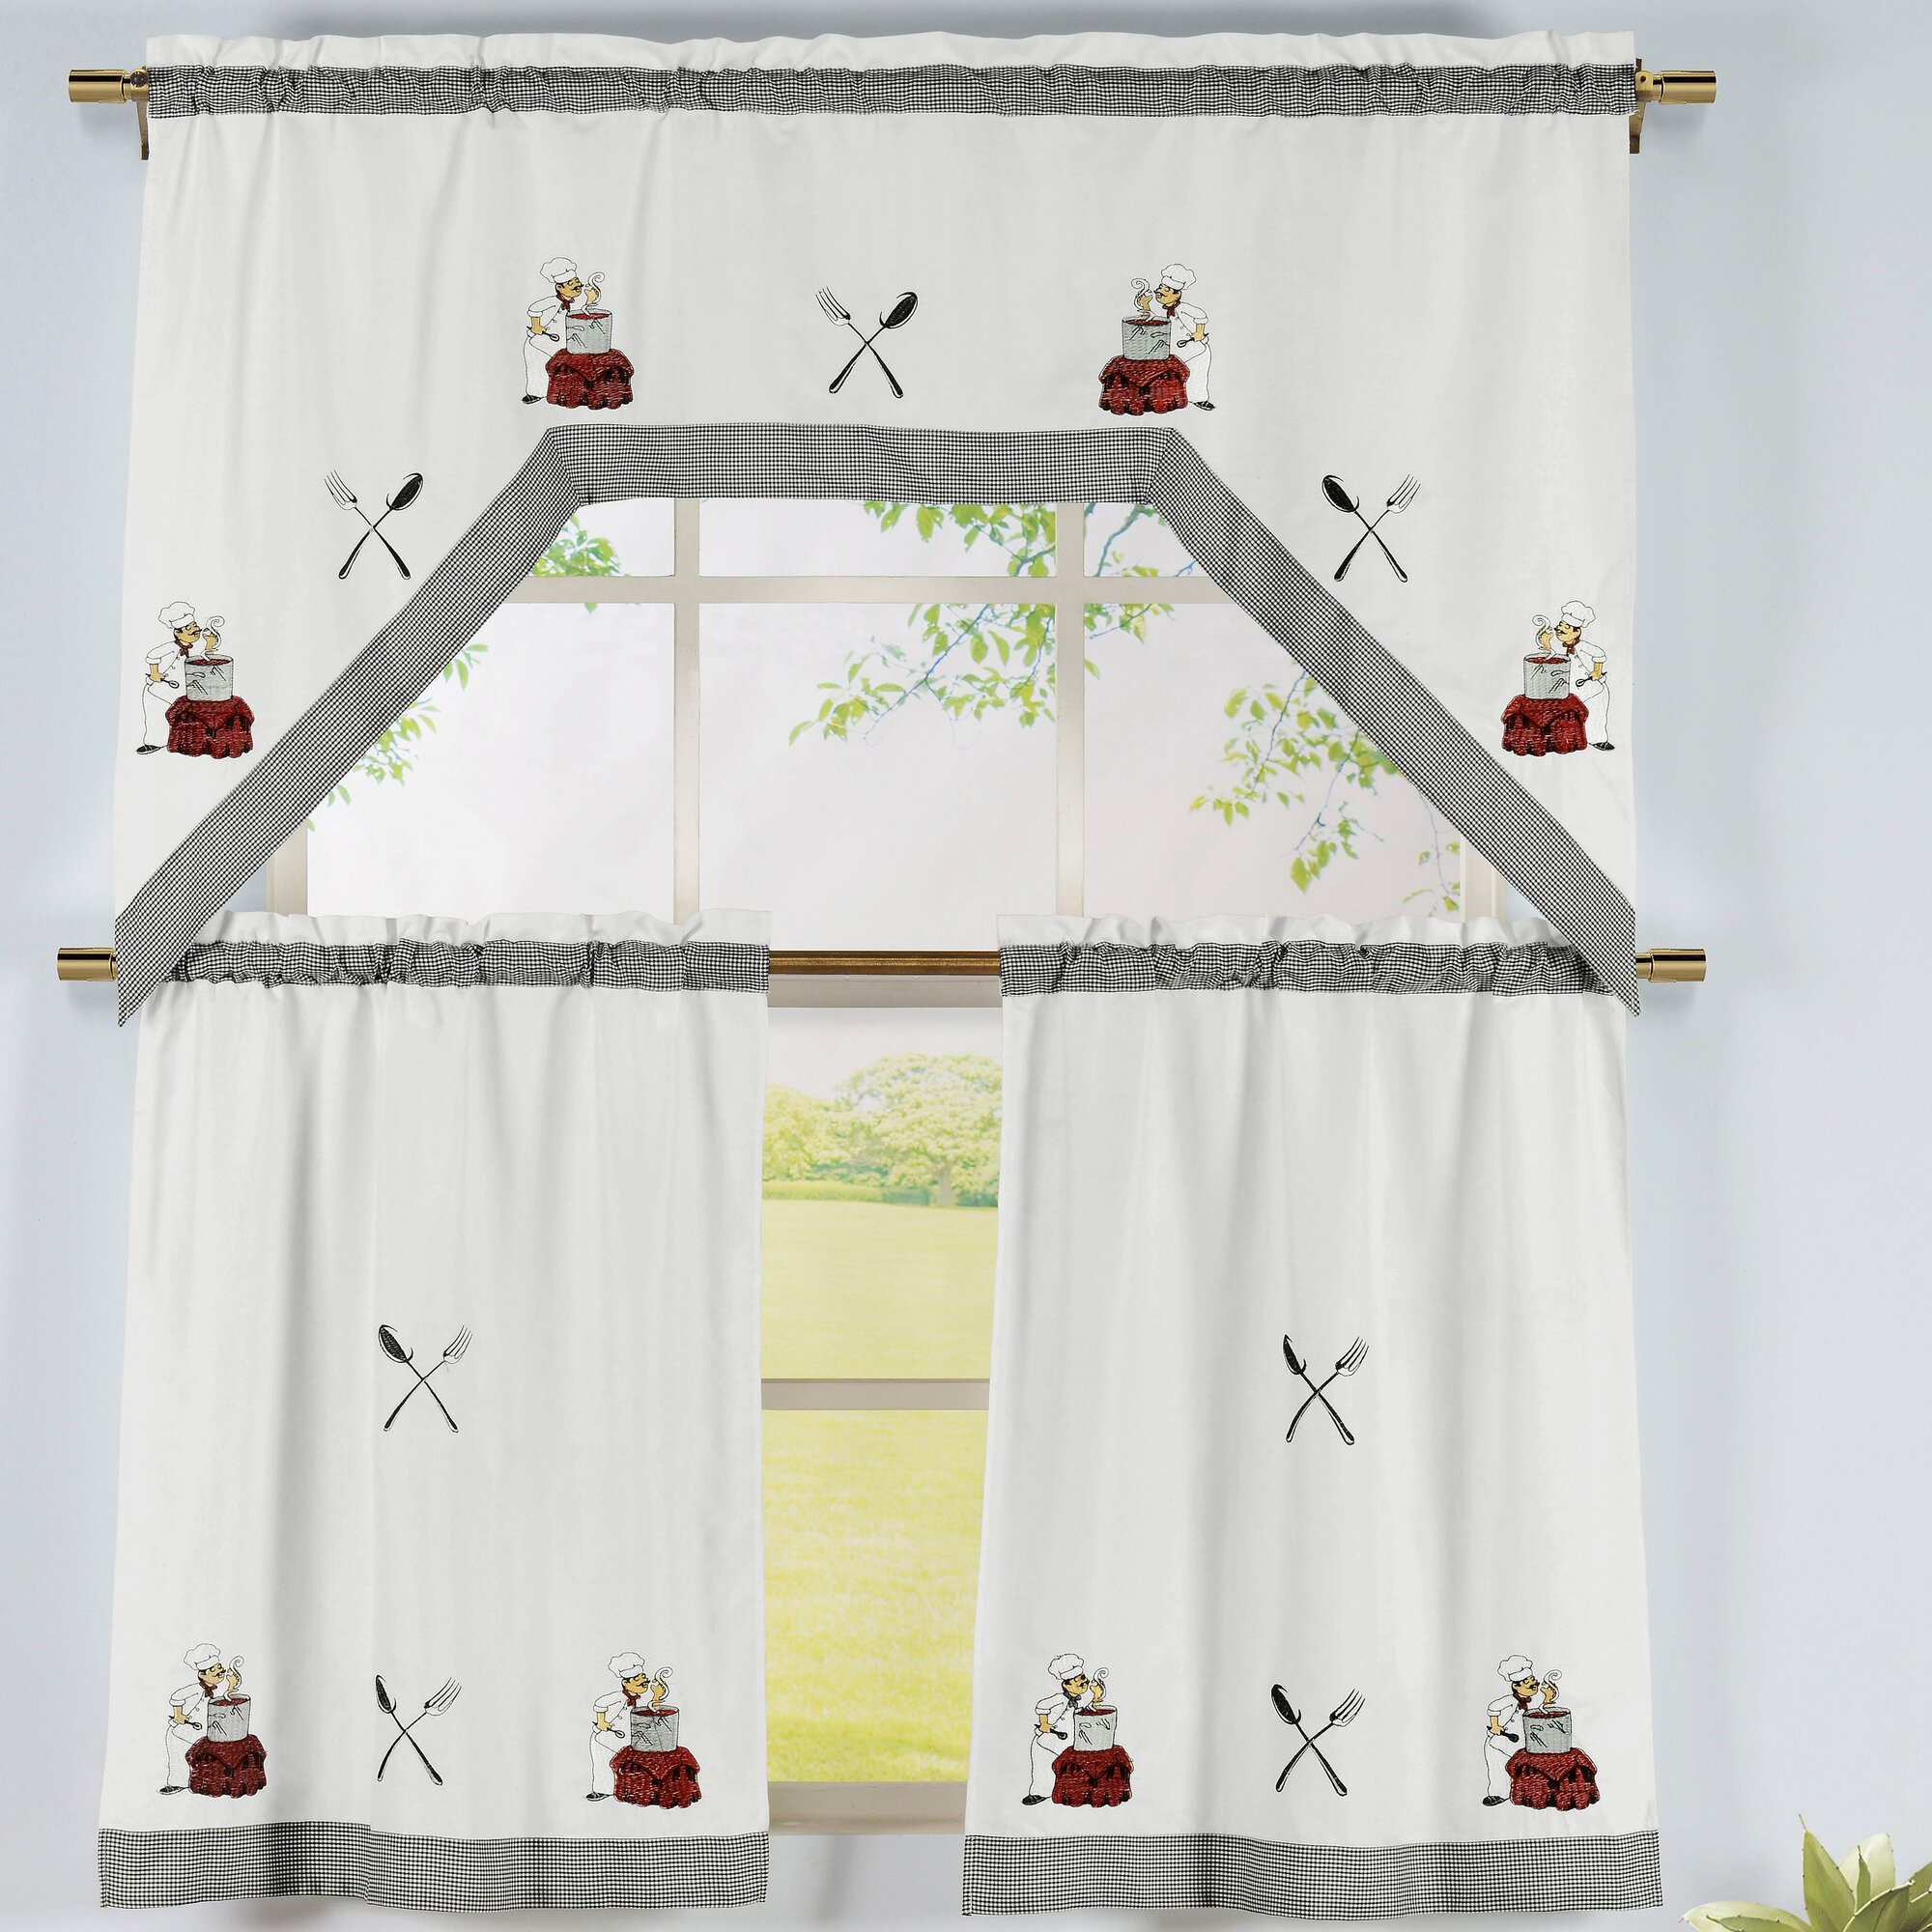 Gallery of stunning custom window treatments custom windows and - Kitchen Valance Image Of Kitchen Valance Curtains